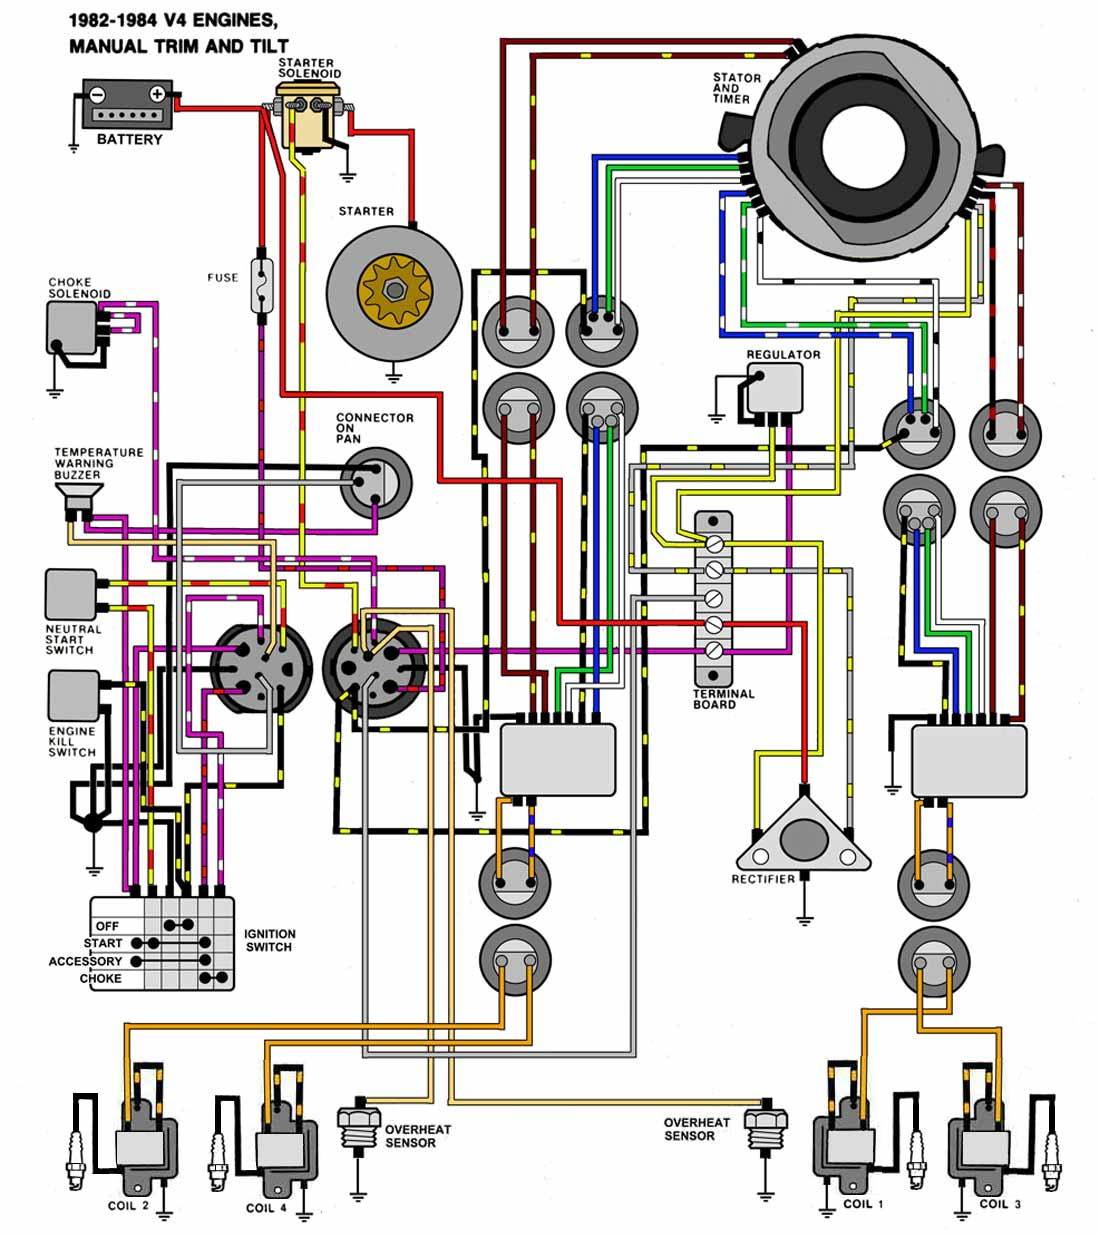 70 hp evinrude outboard motor wiring diagram 70 hp johnson 1990 60 hp evinrude wiring diagram schematic [ 1100 x 1235 Pixel ]